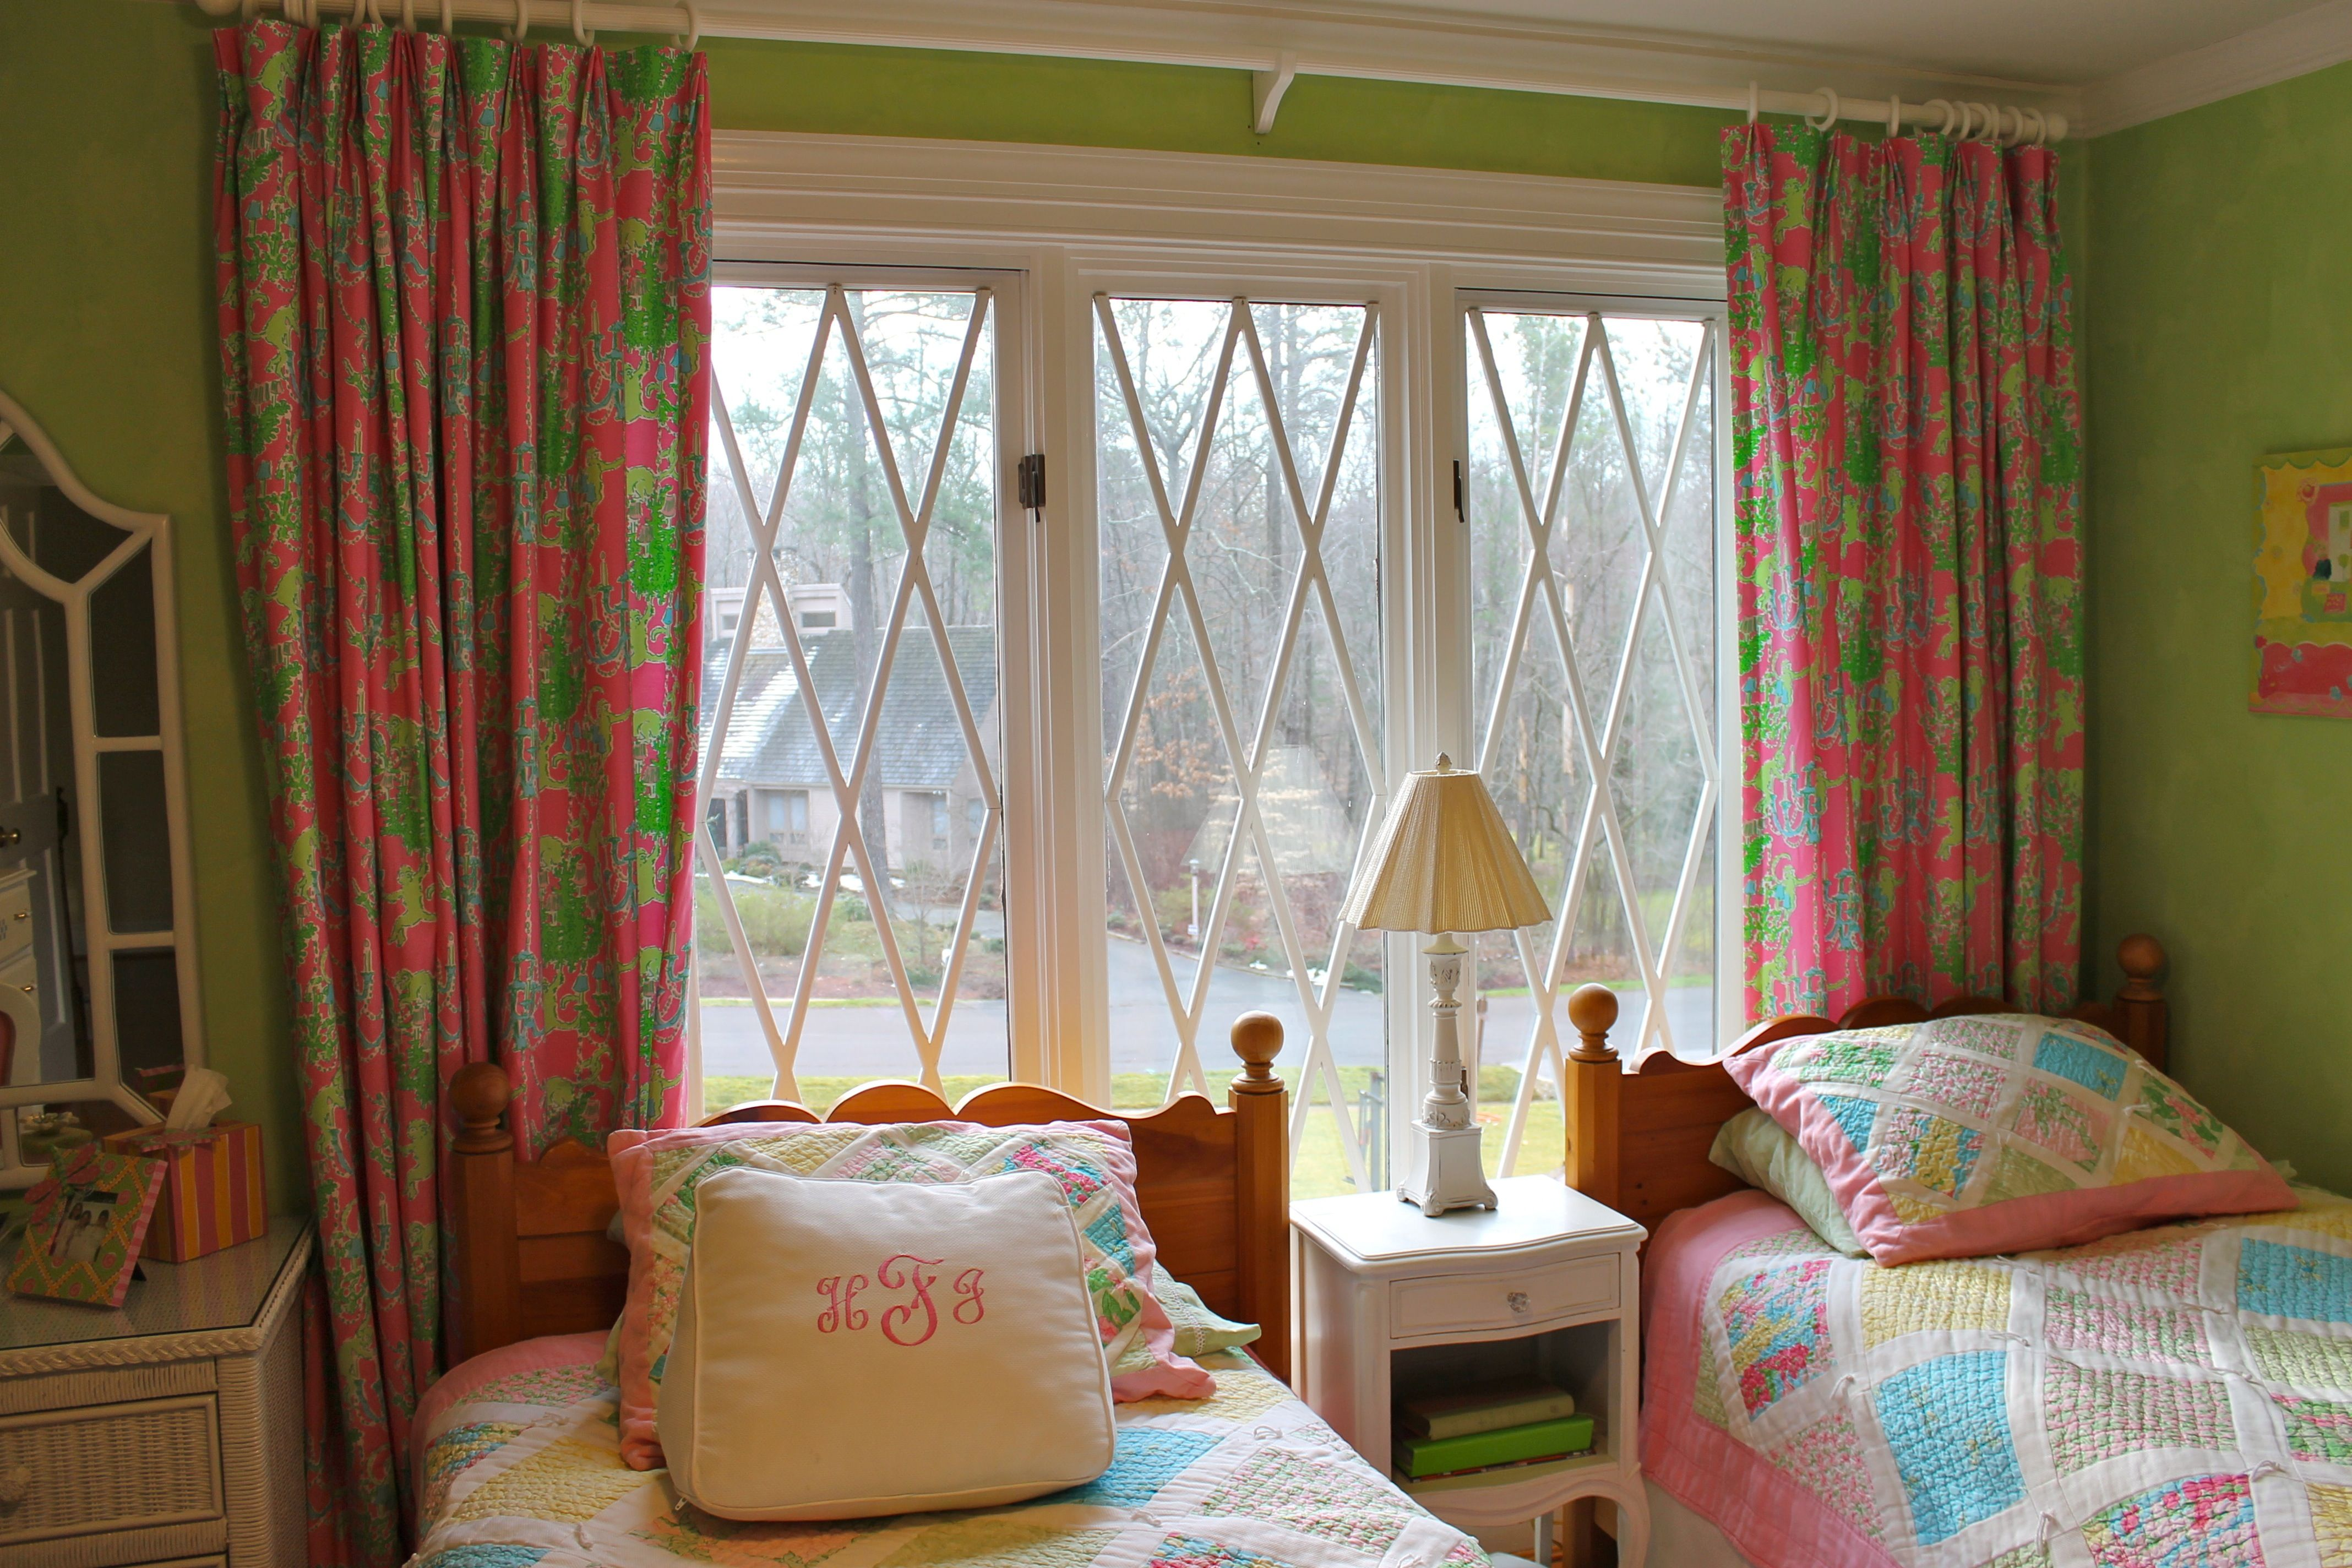 window treatment baton styles astonishing drapes rouge for image arched design windows half curtains u f decoration moon and shutters trend blinds amazing trends